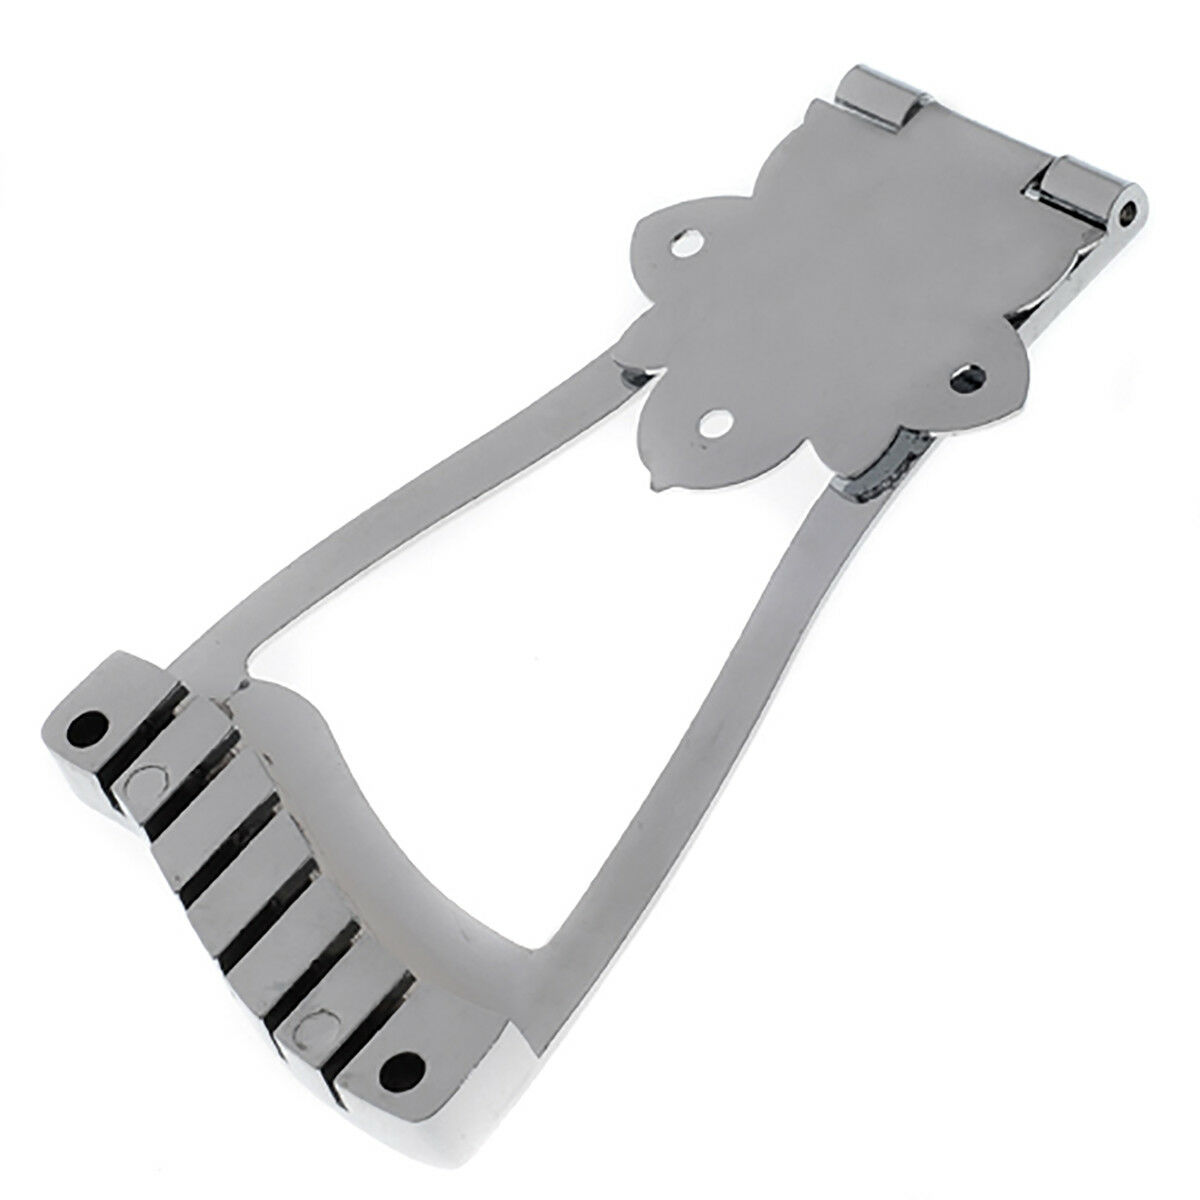 trapeze tailpiece for vintage archtop for jazz guitar parts replacement chrome ebay. Black Bedroom Furniture Sets. Home Design Ideas